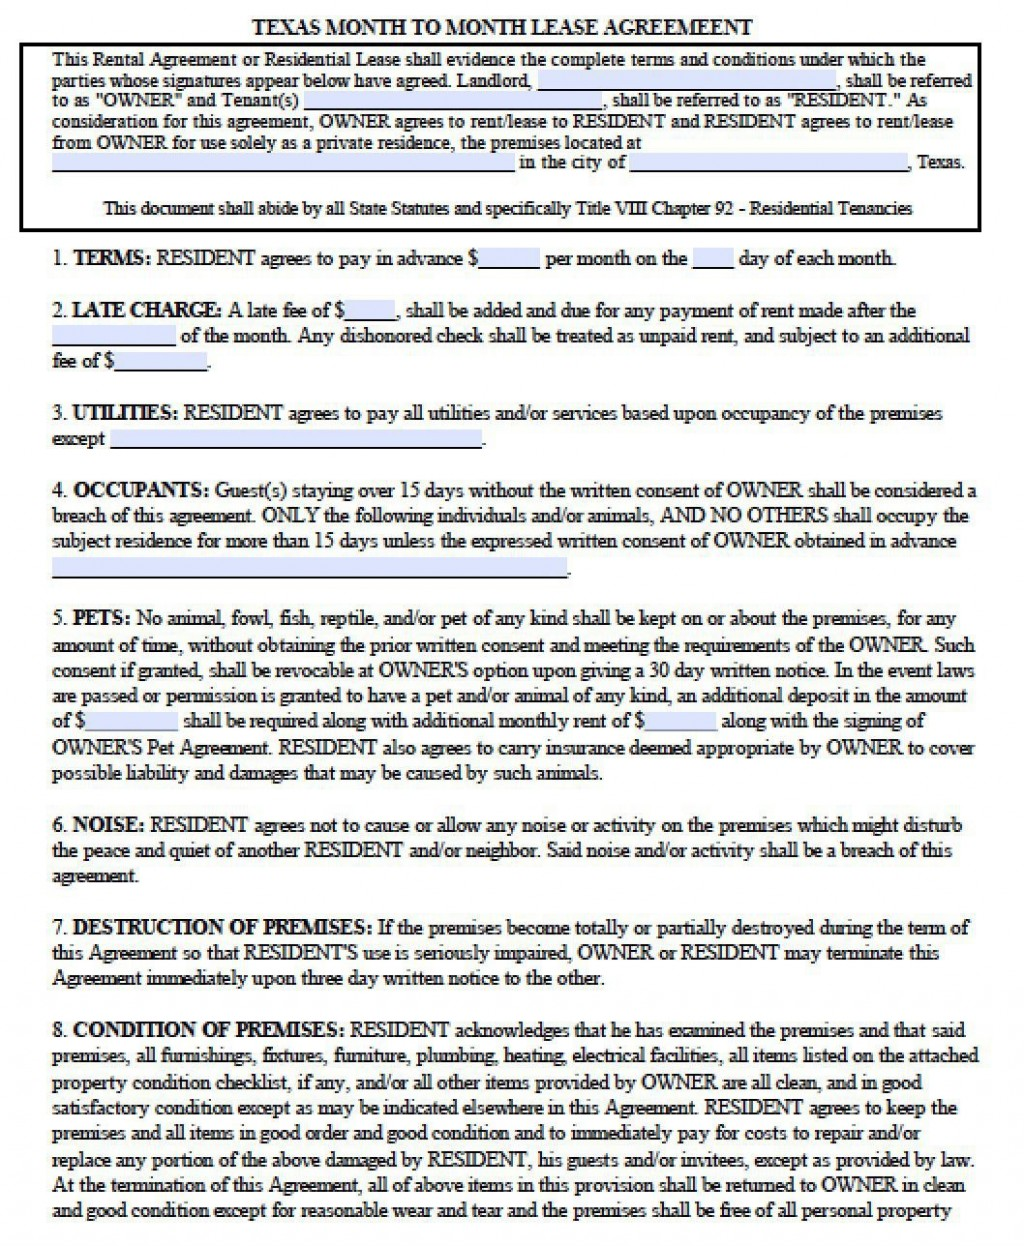 005 Dreaded Apartment Lease Agreement Form Texa Highest Quality Large